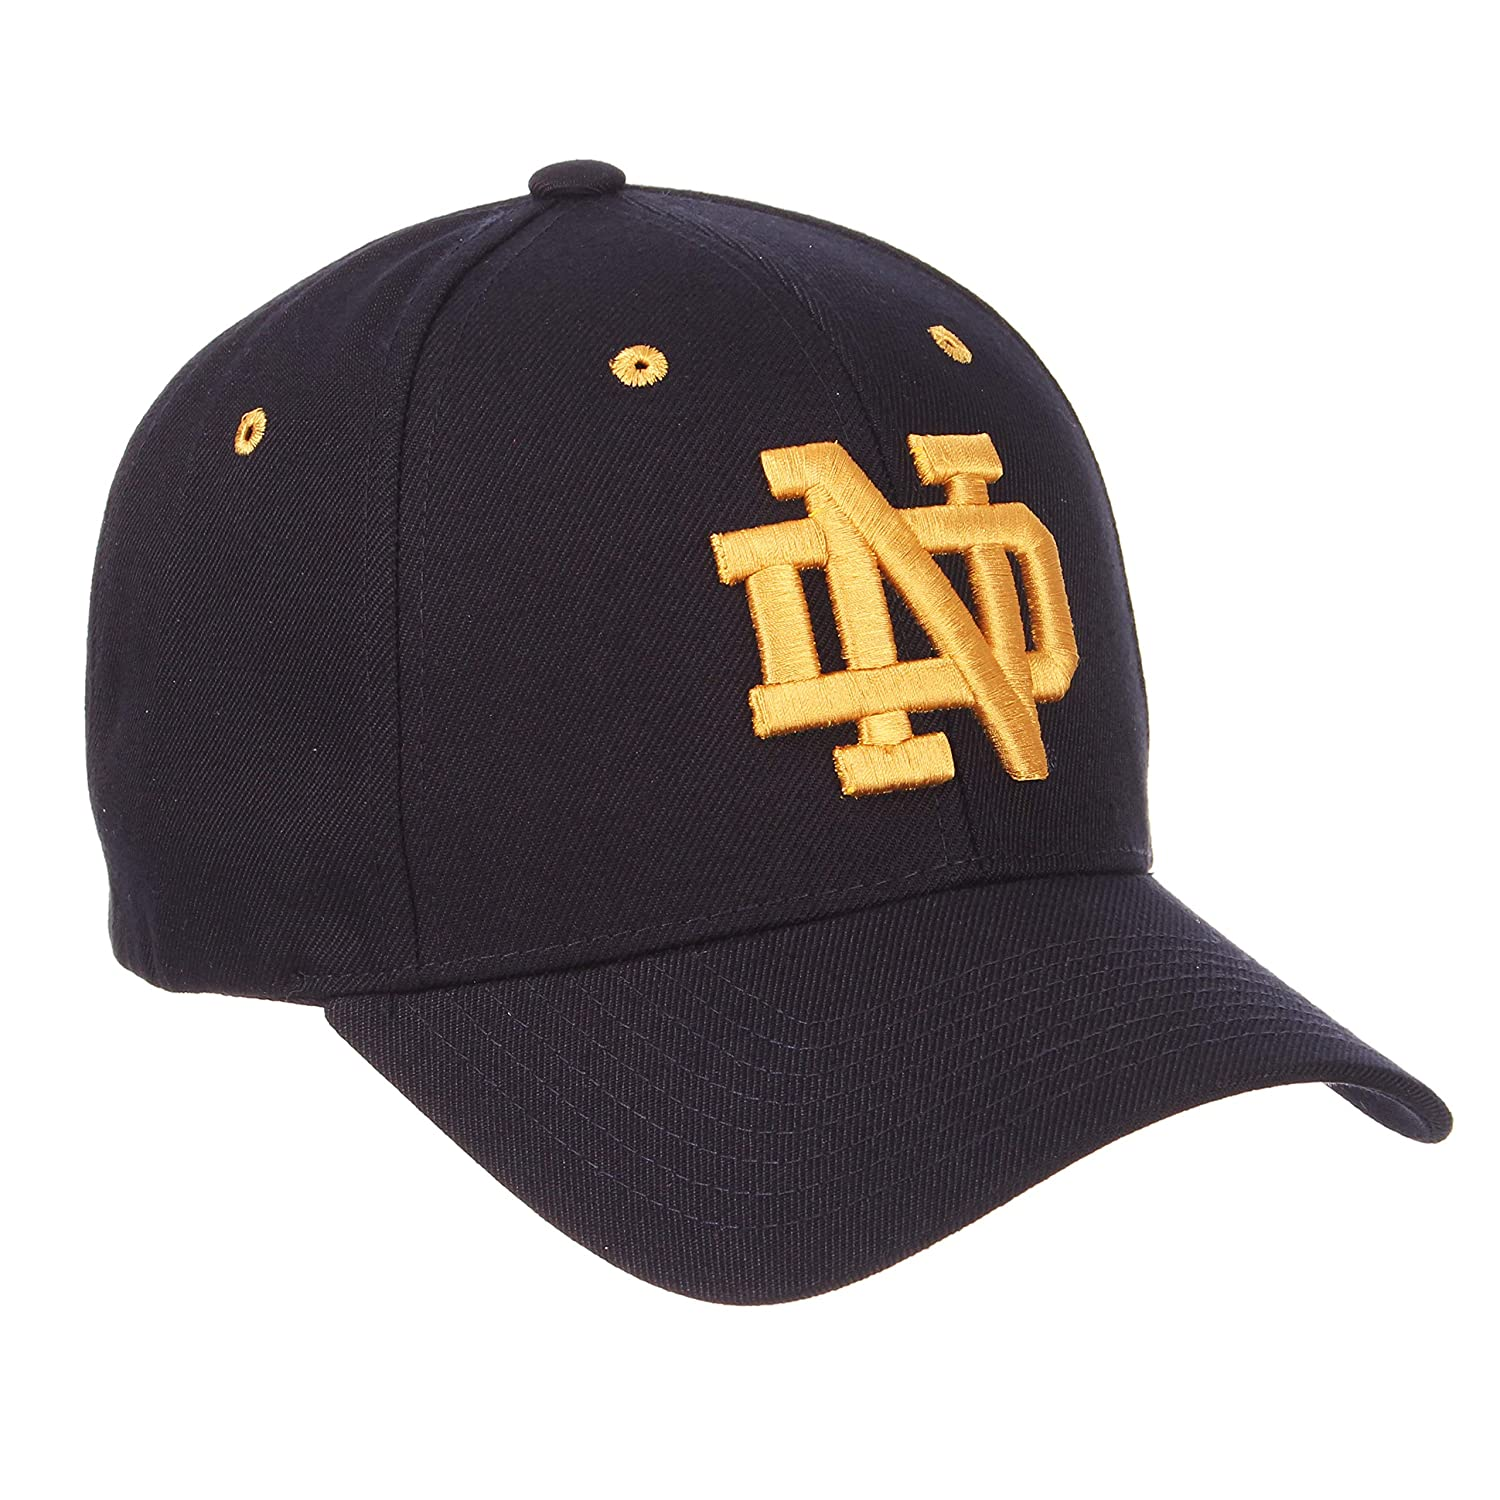 ZHATS University of Notre Dame ND Fighting Irish Blue Competitor DH Plastic Snapback Baseball Hat//Cap Size Adjustable